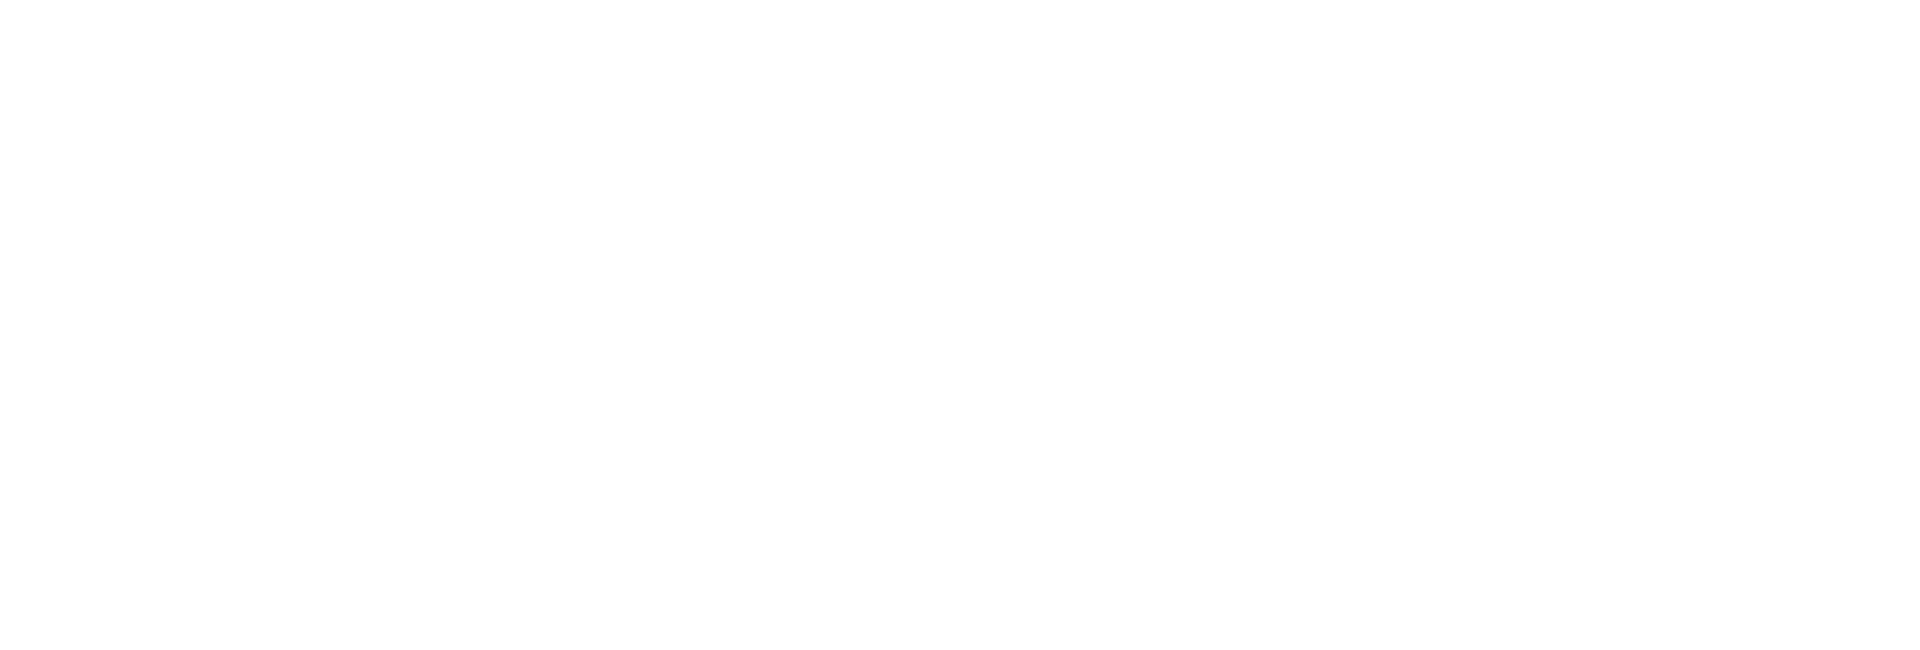 chilirezept.de